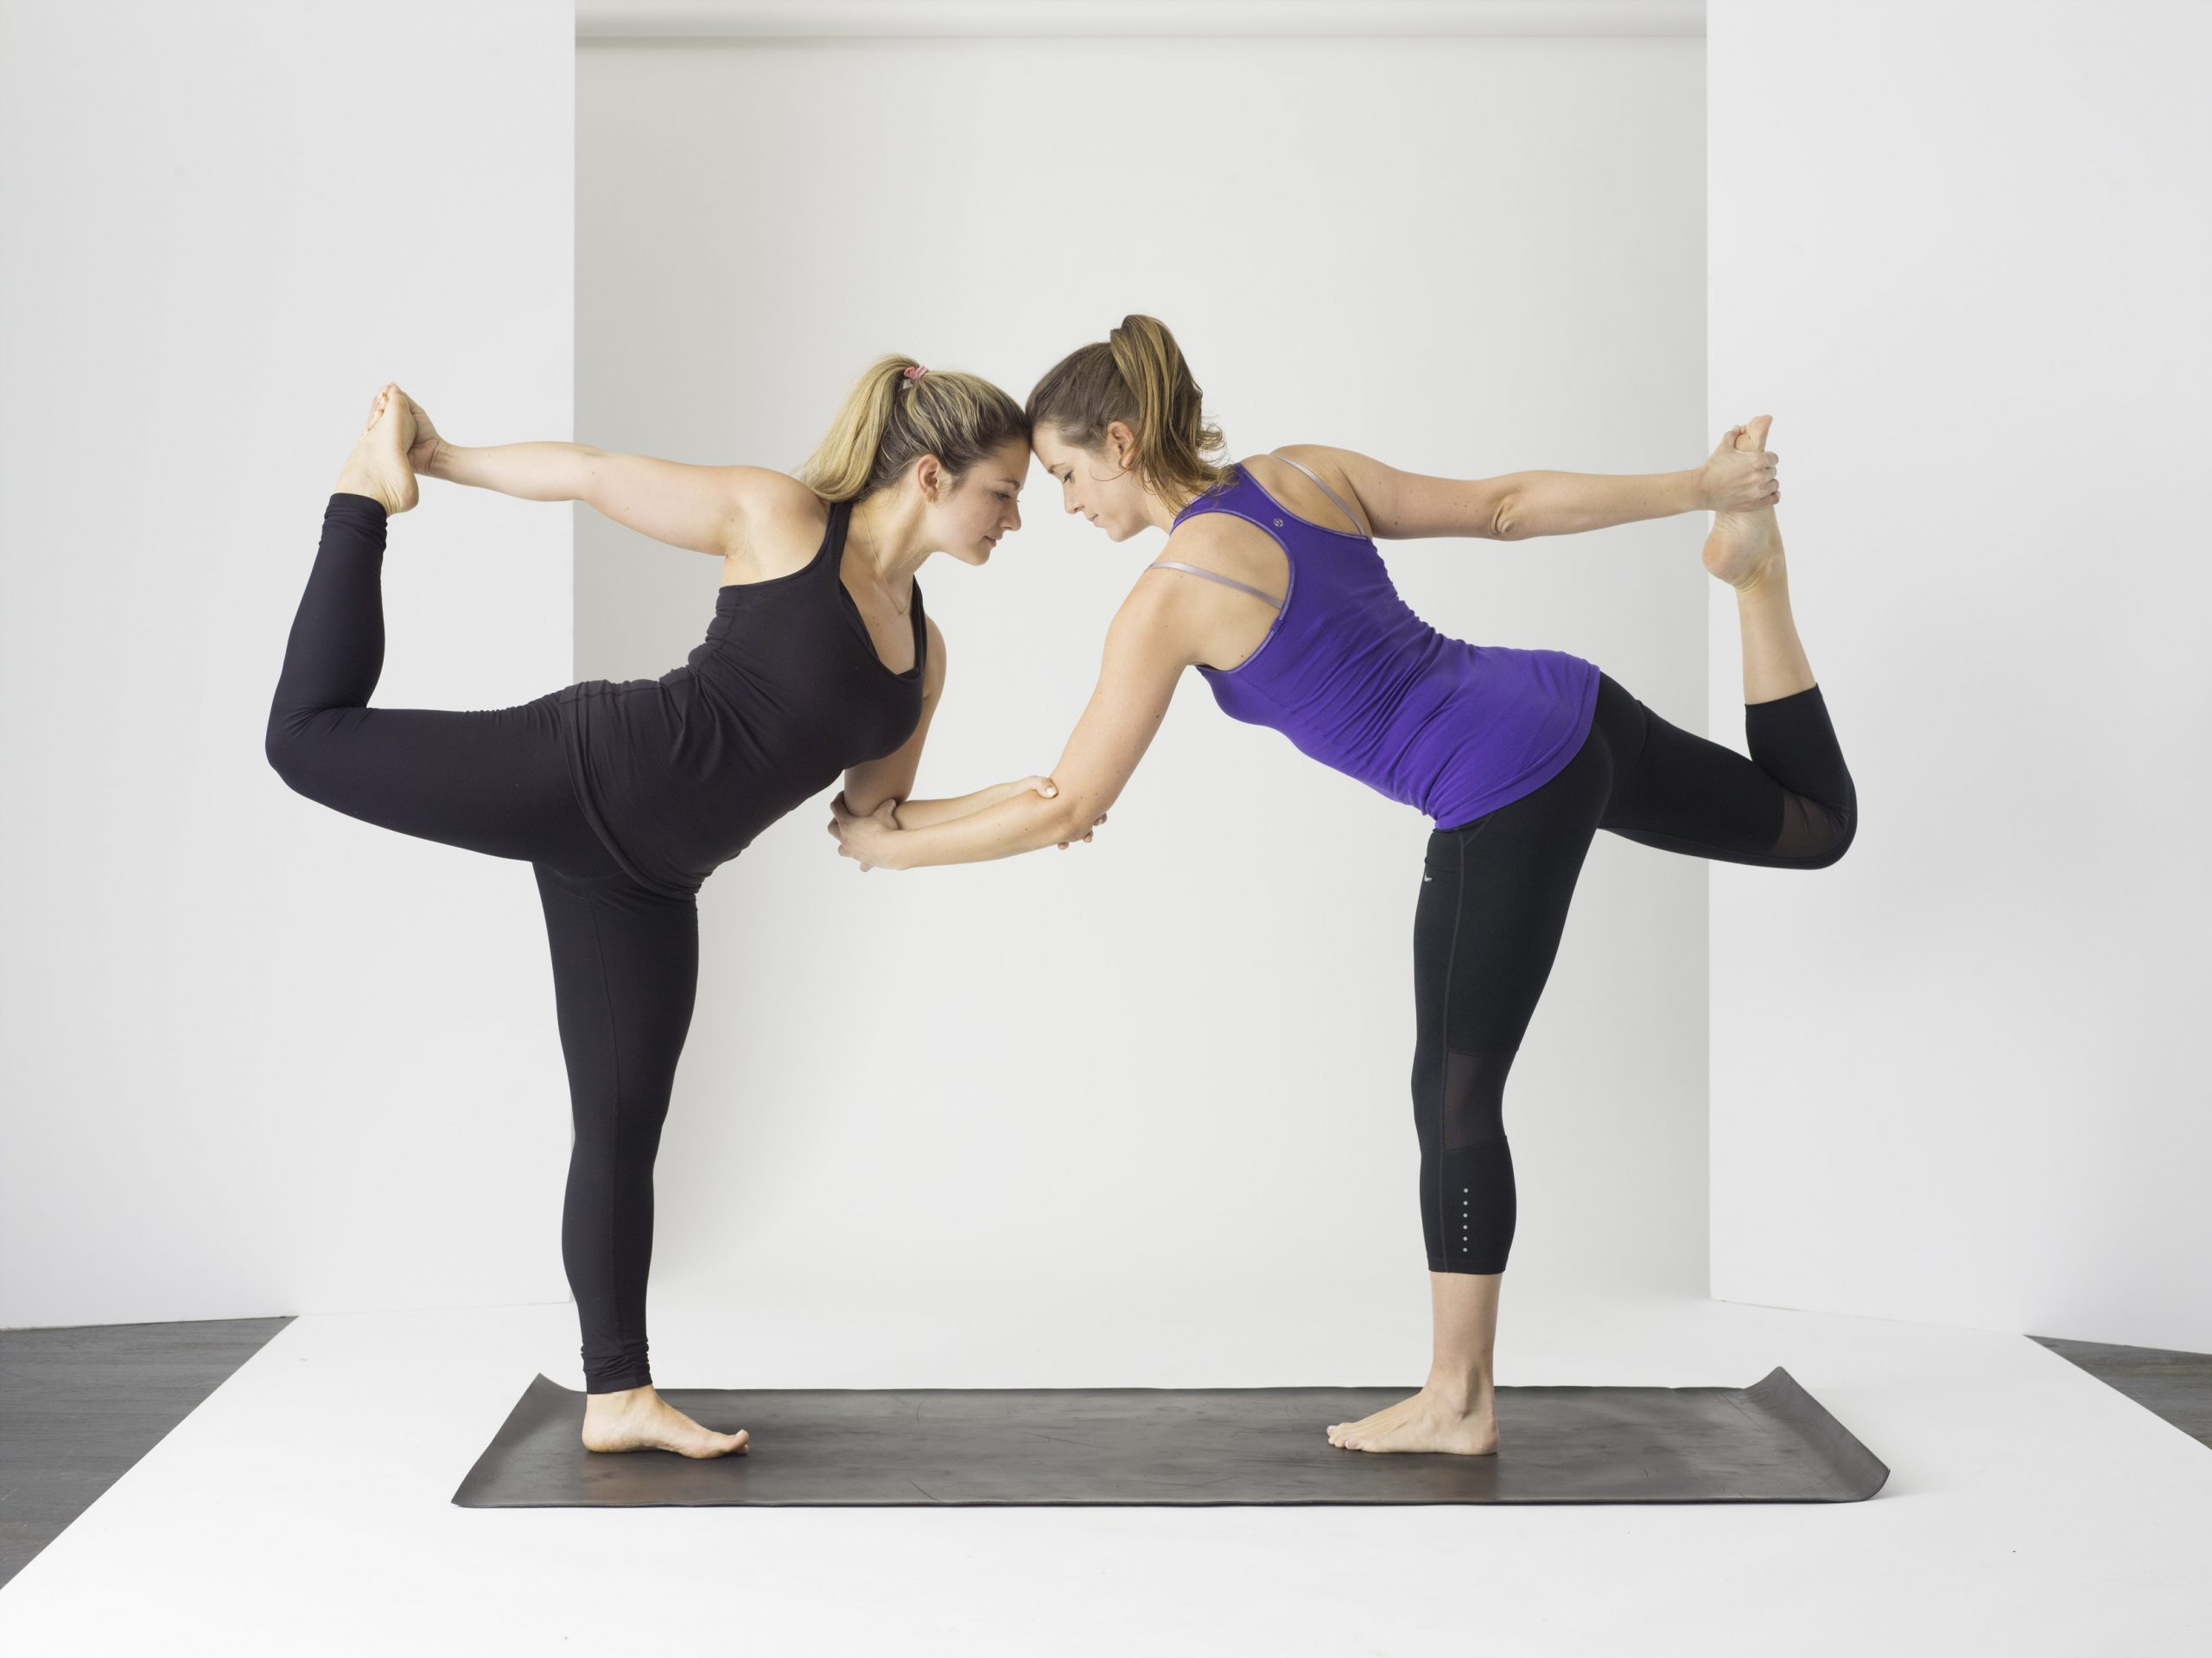 Life-Long Friends while doing yoga